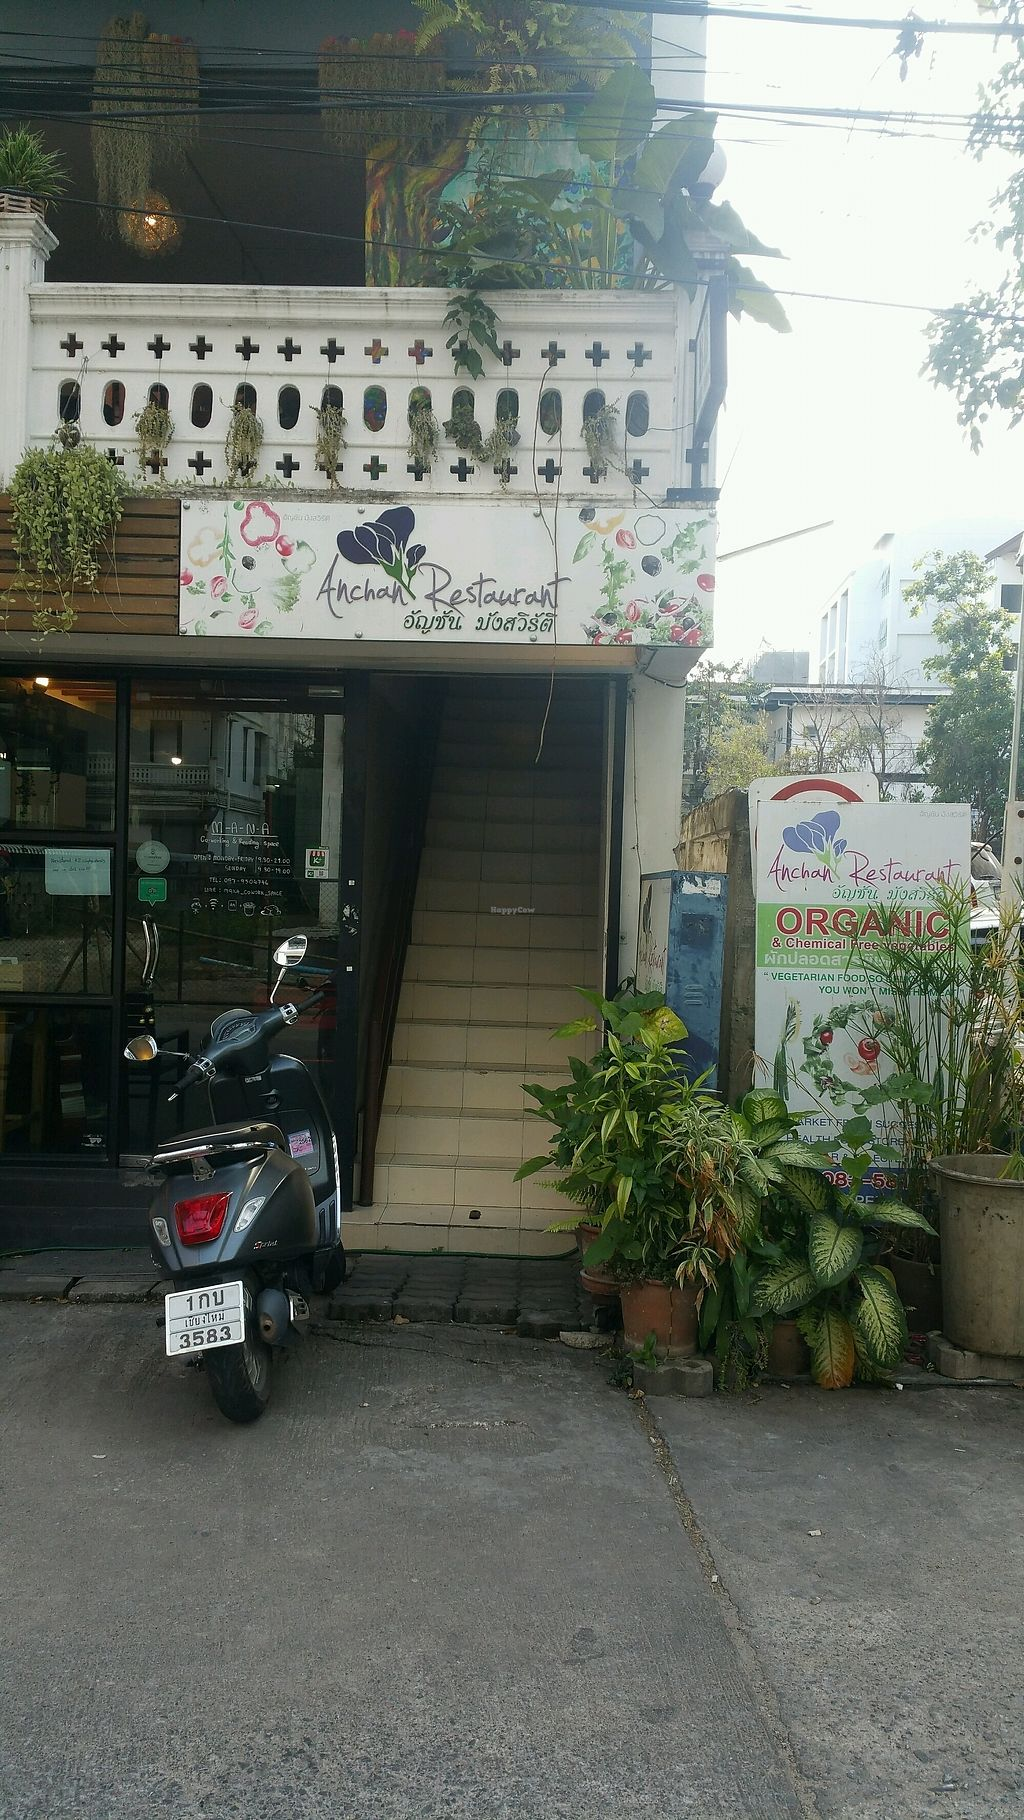 "Photo of Anchan Vegetarian Restaurant  by <a href=""/members/profile/Mike%20Munsie"">Mike Munsie</a> <br/>street front <br/> February 4, 2018  - <a href='/contact/abuse/image/34920/354717'>Report</a>"